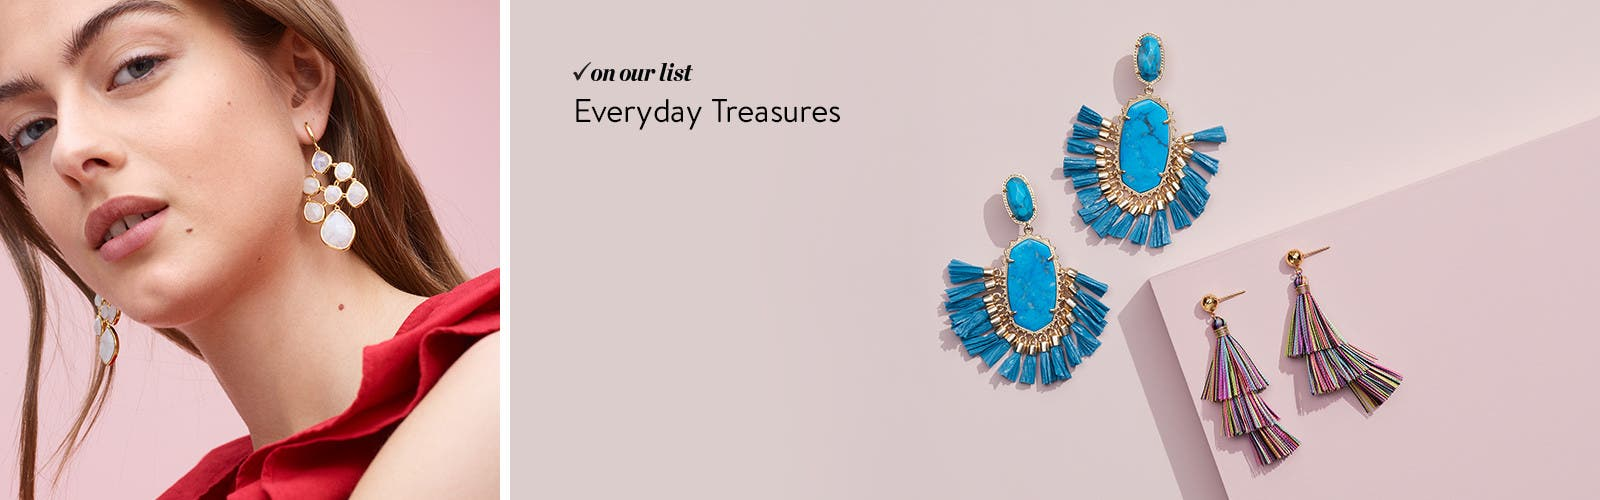 Women's must-have jewelry.